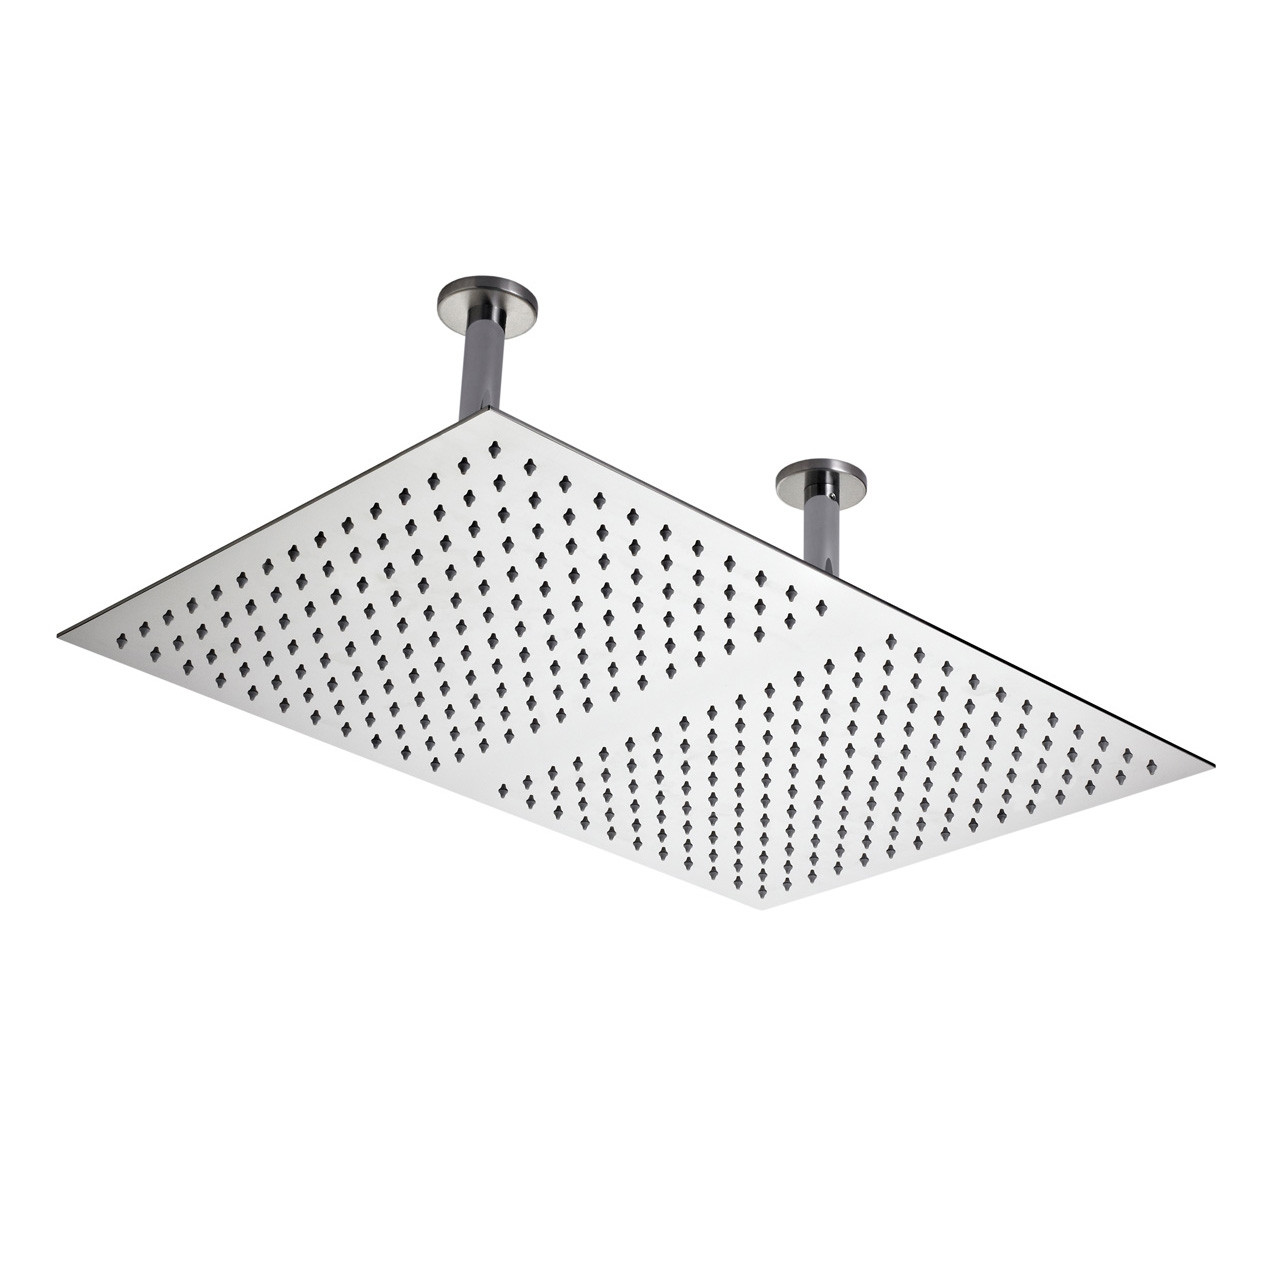 Hudson Reed Ceiling Mounted Shower Head 600mm x 400mm - HEAD66